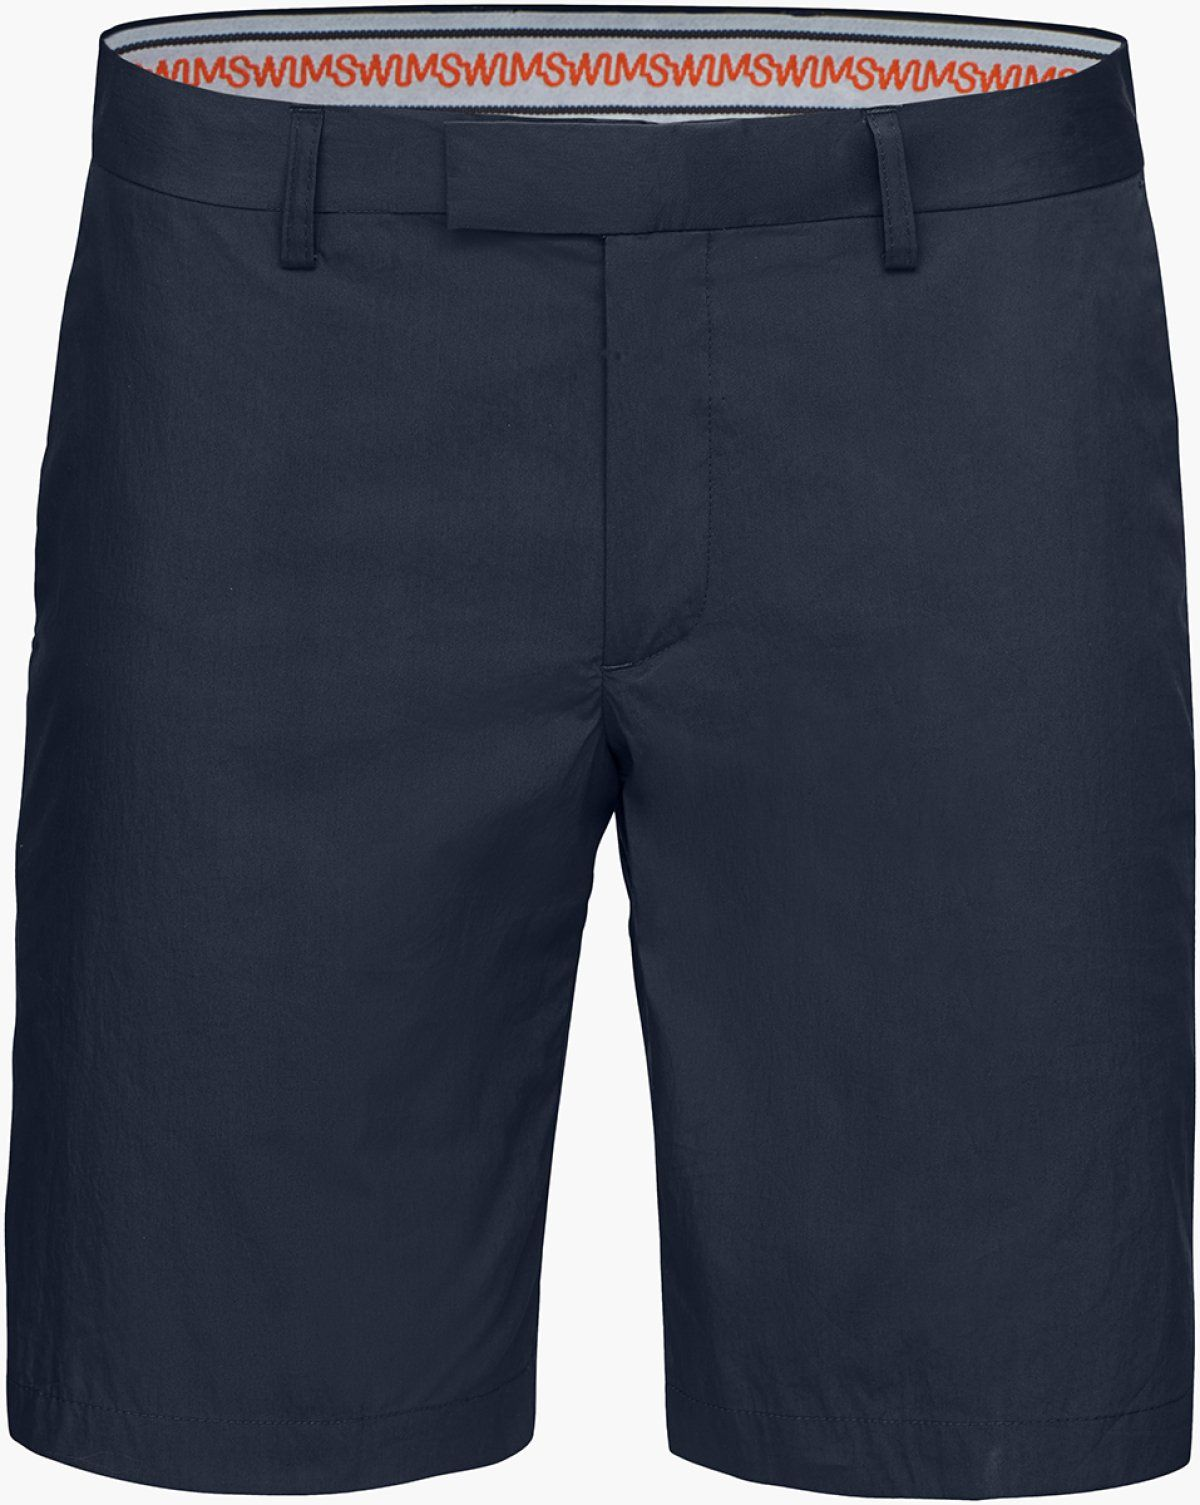 SWIMS - Breeze San Rocco Shorts in Navy XL (38w)